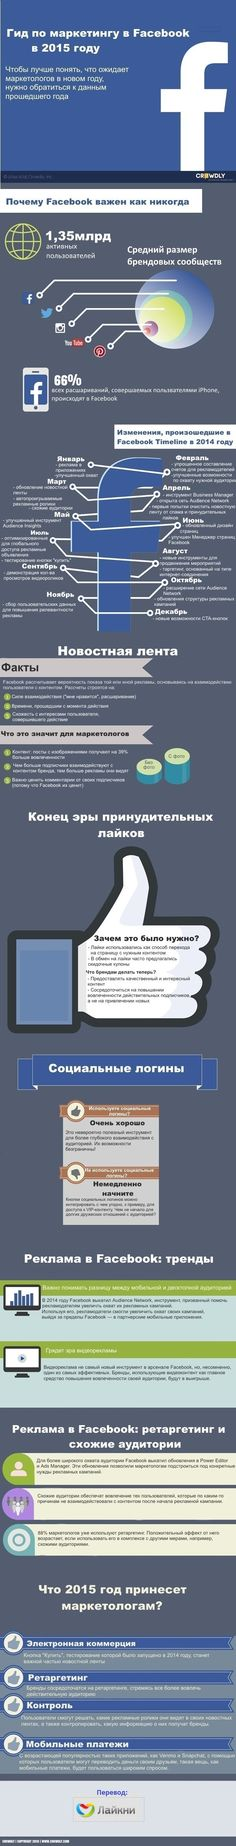 Каким будет маркетинг в Facebook в 2015 году? http://www.likeni.ru/events/Kakim-budet-marketing-v-Facebook-v-2015-godu/